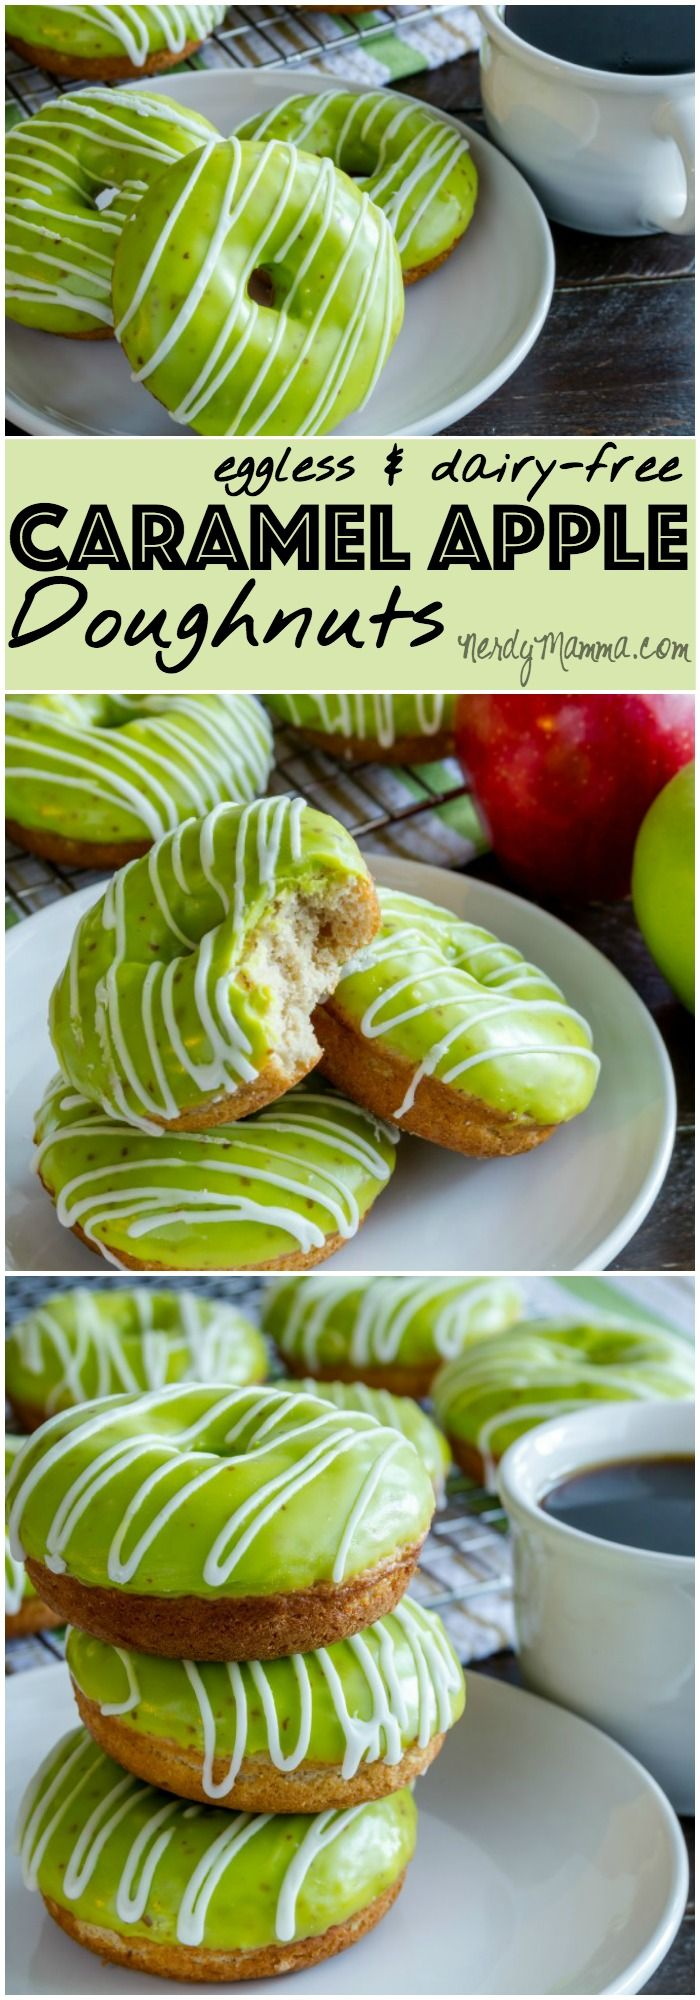 My kids are already begging me to make more of these delicious eggless and dairy-free caramel apple doughnuts! Best breakfast idea ever.